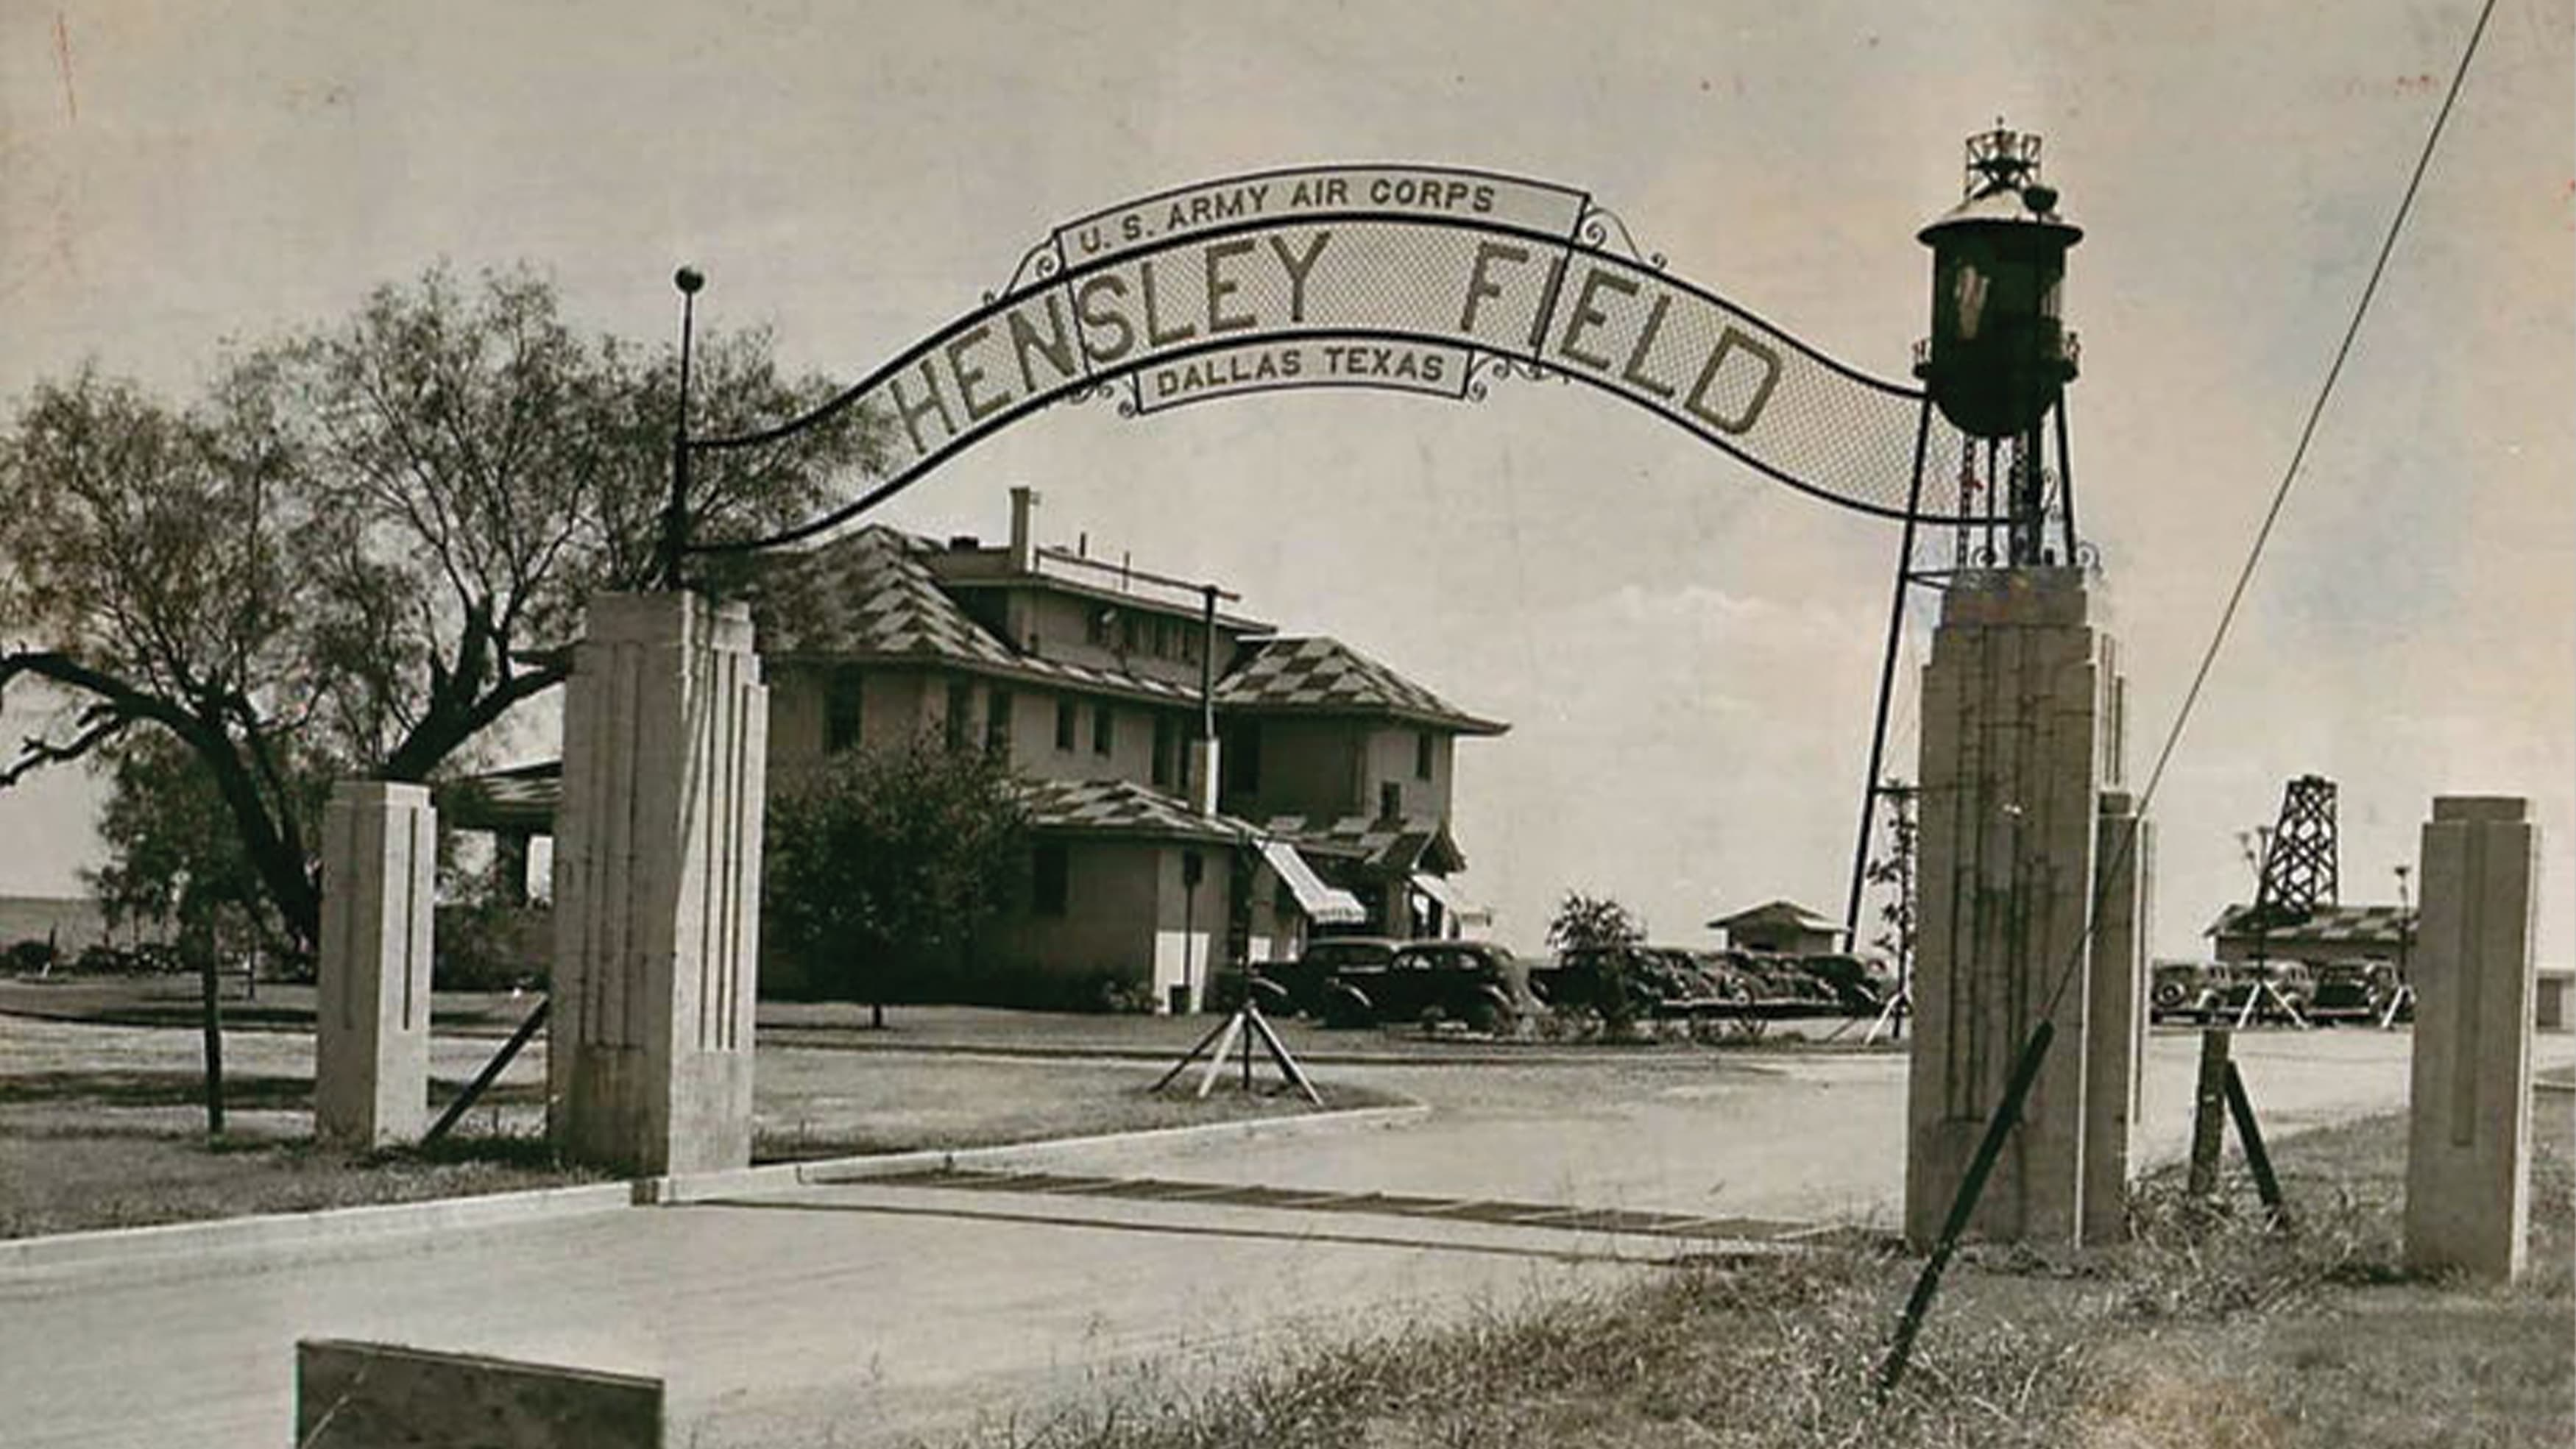 Historic image of entry gateway signage to Hensley Field when it operated as a Navy base.